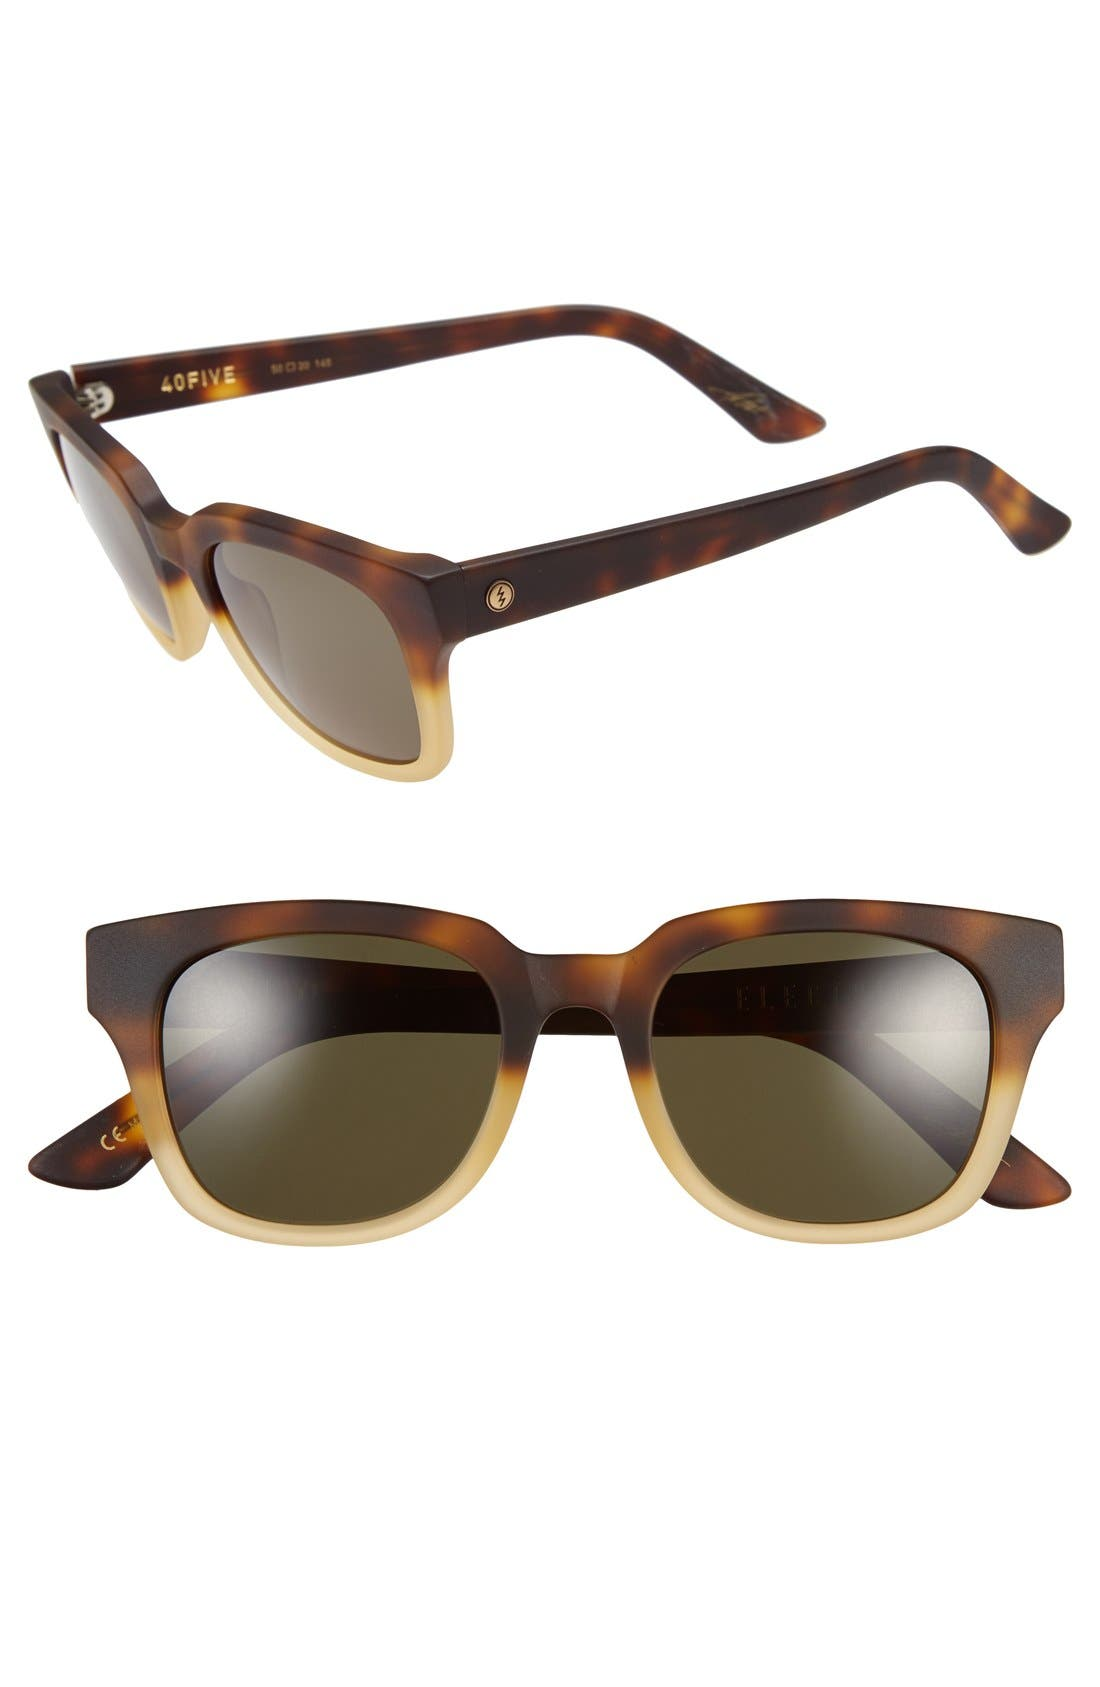 ELECTRIC '40Five' 50mm Sunglasses